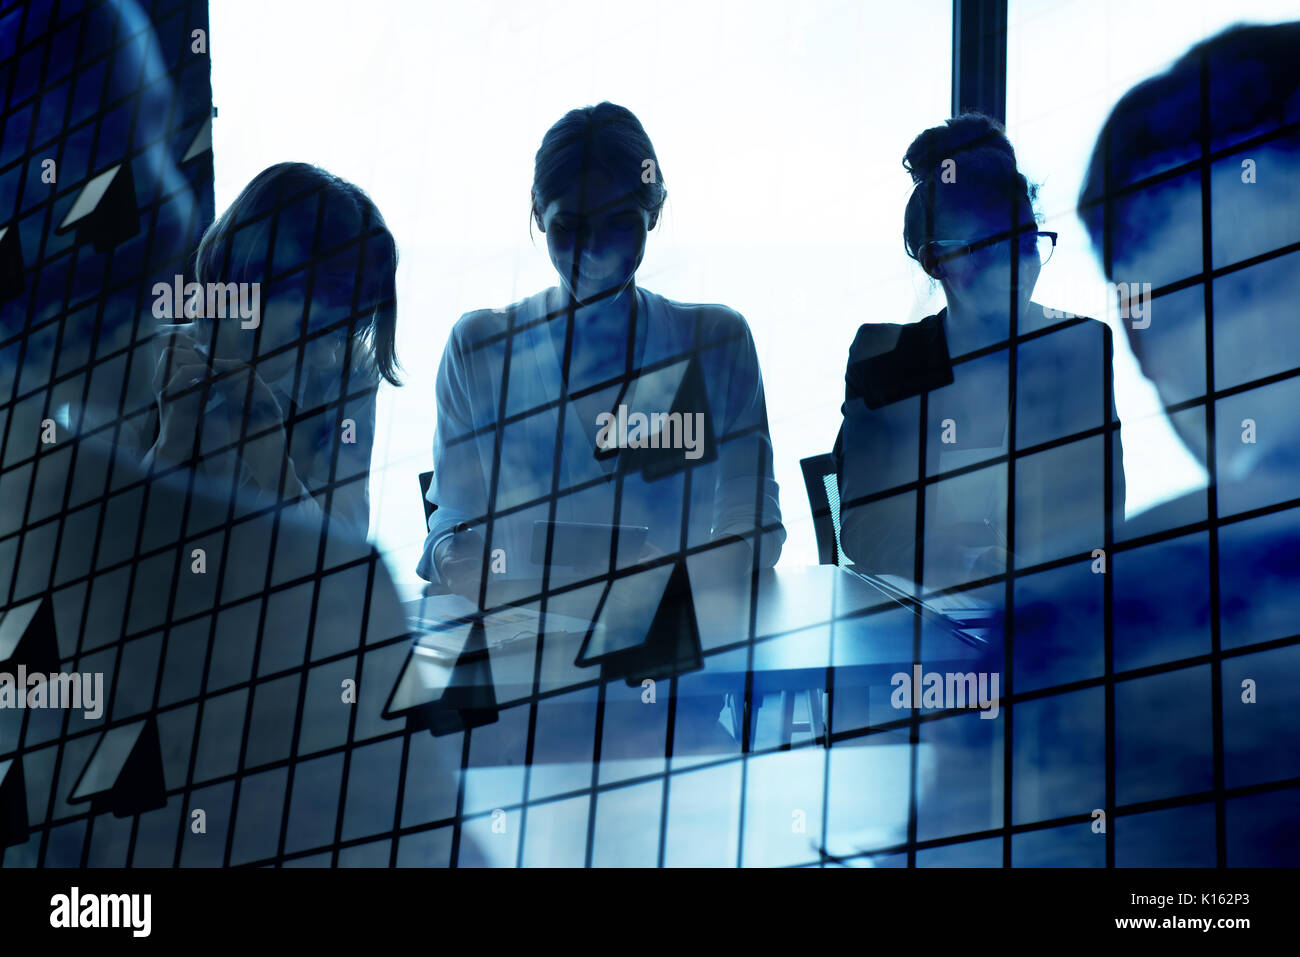 Silhouette of businessperson in office with skyscraper effect. concept of partnership and teamwork - Stock Image